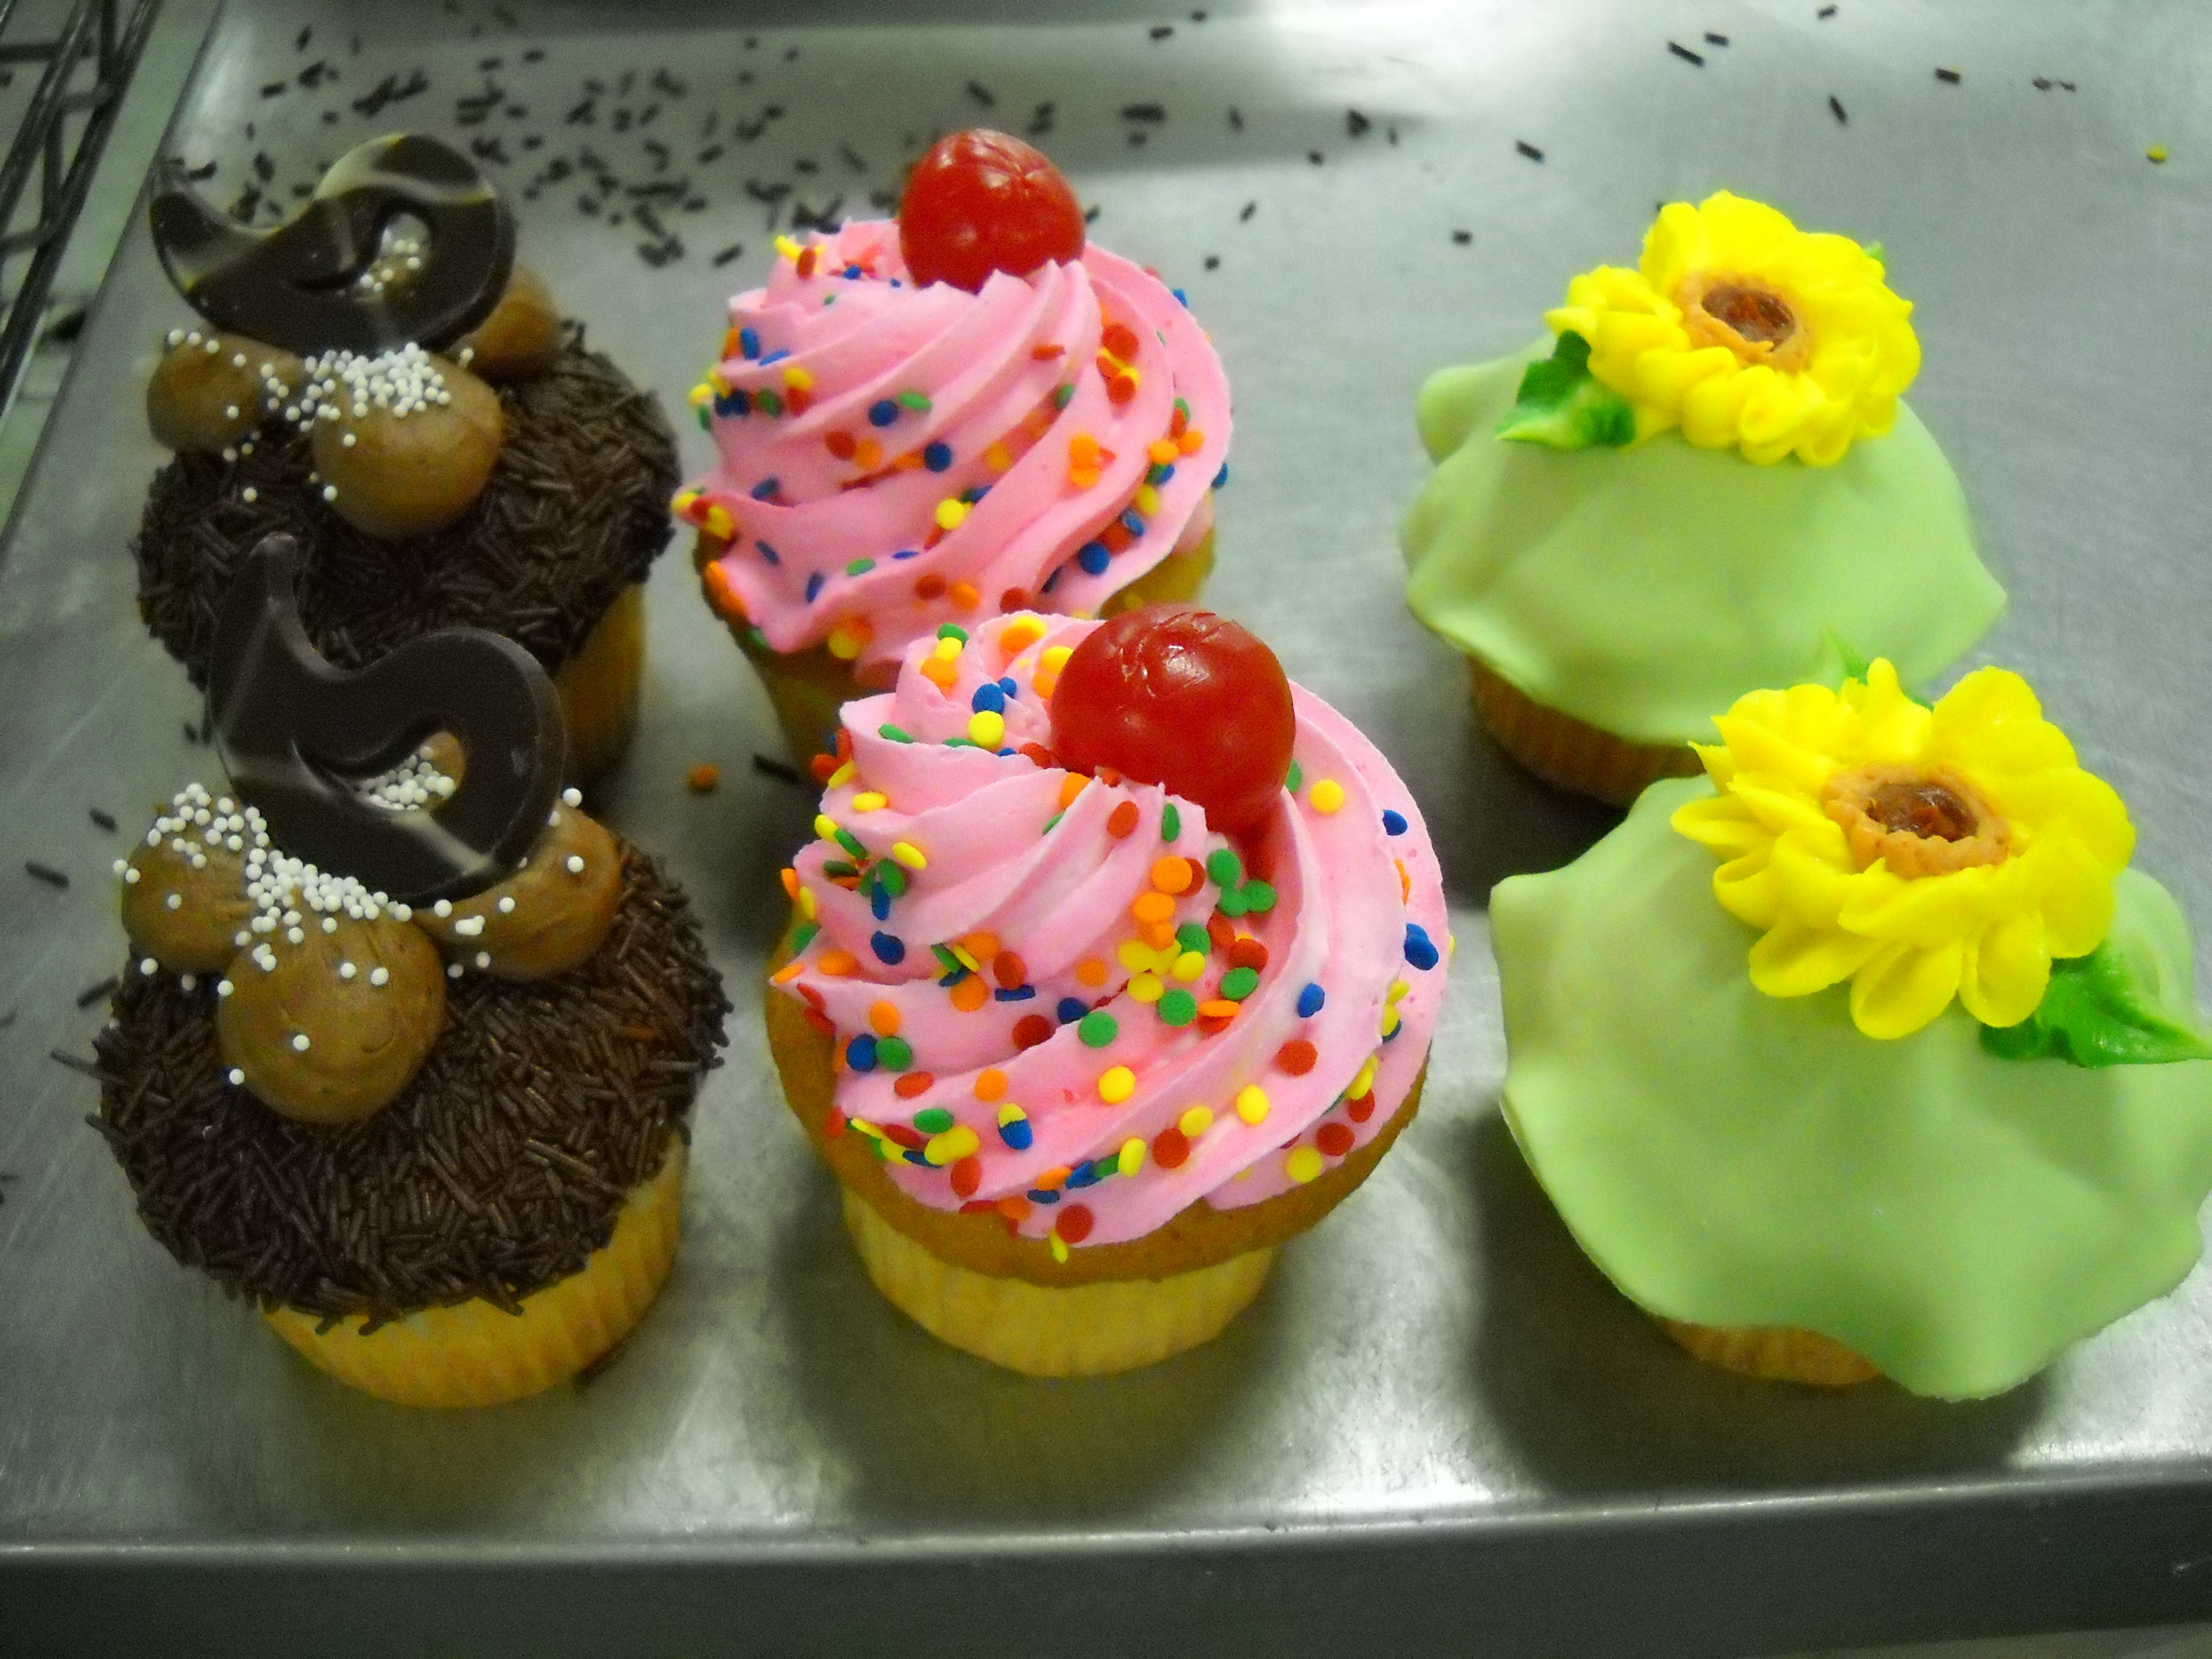 Adorable Cupcakes! One even has a cherry on top!11